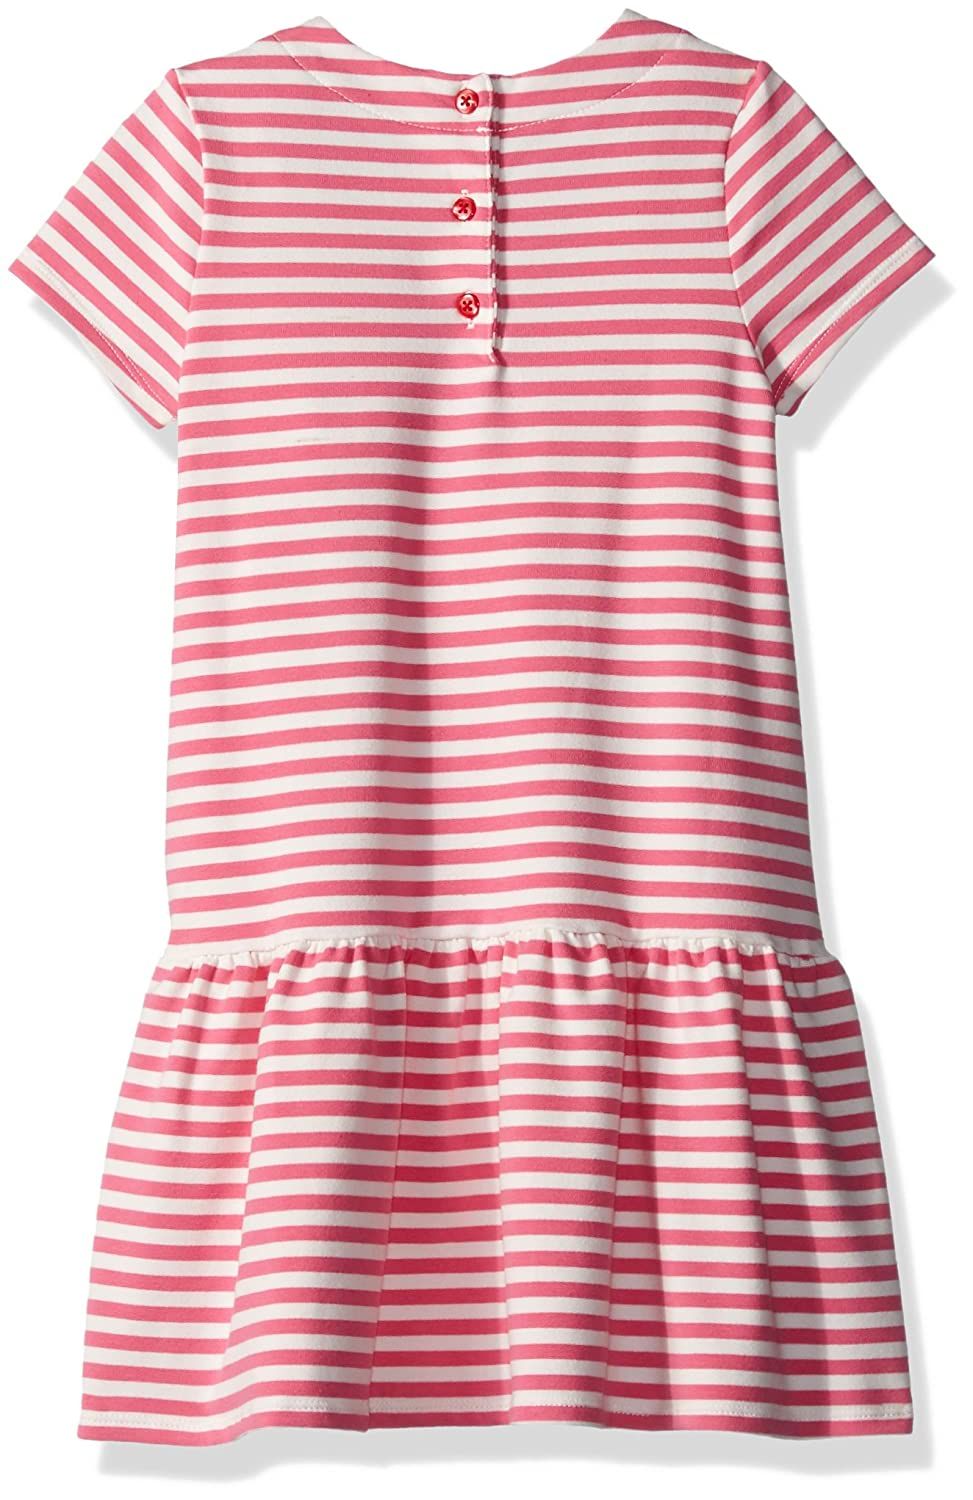 989522a18 Gymboree Toddler Girls  Pink Striped French Terry Dress